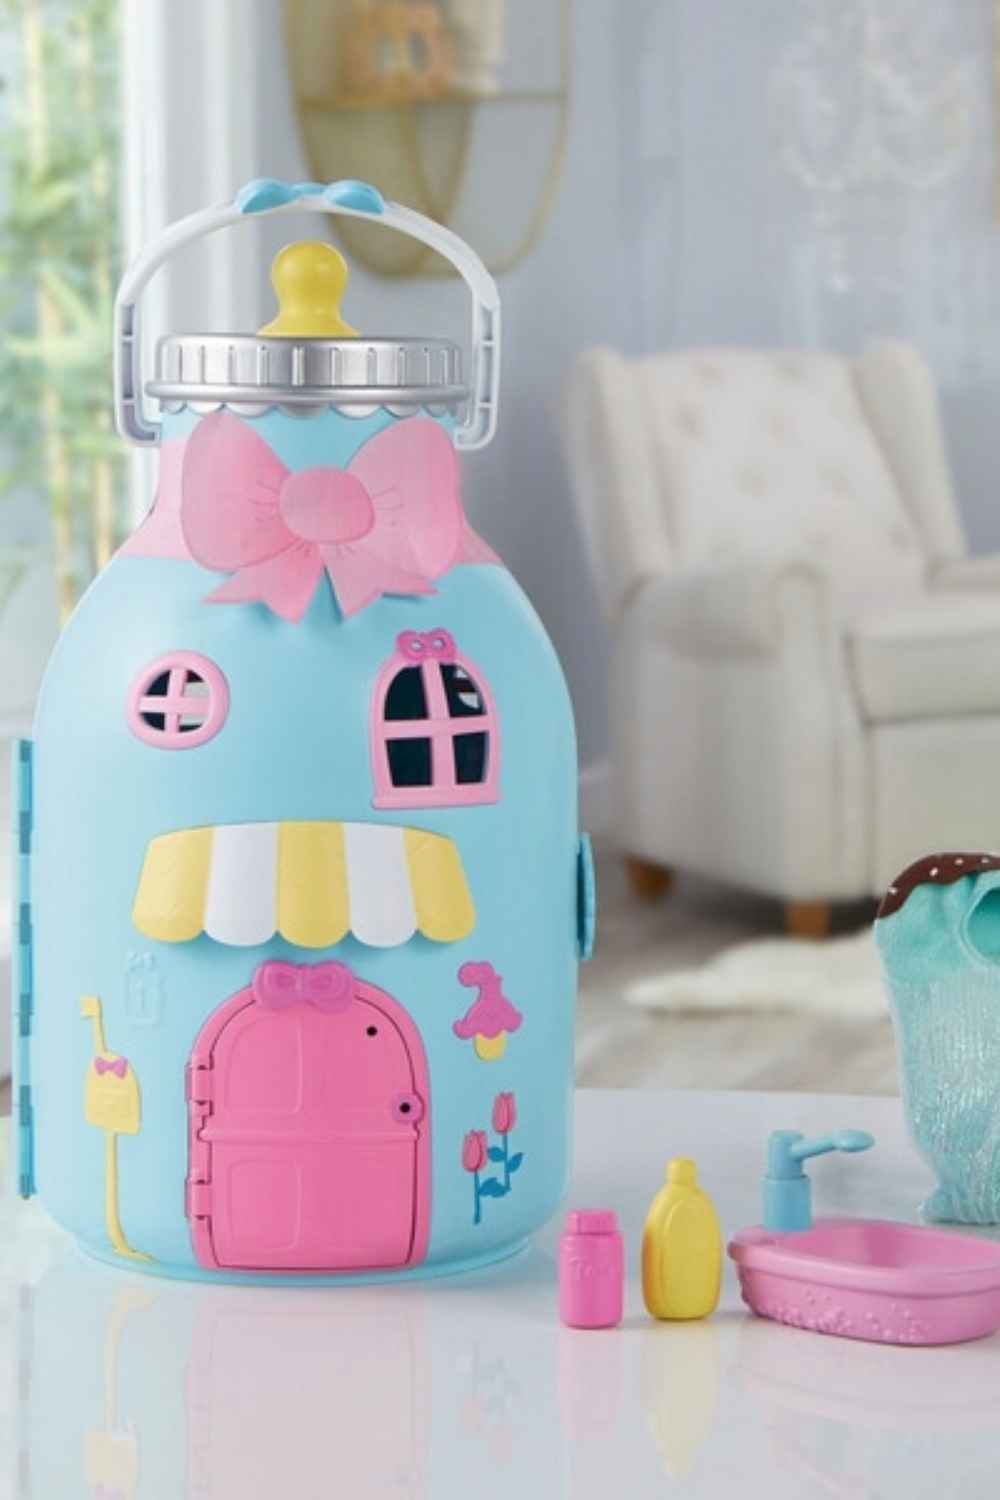 BABY born Surprise Bottle Playset closed